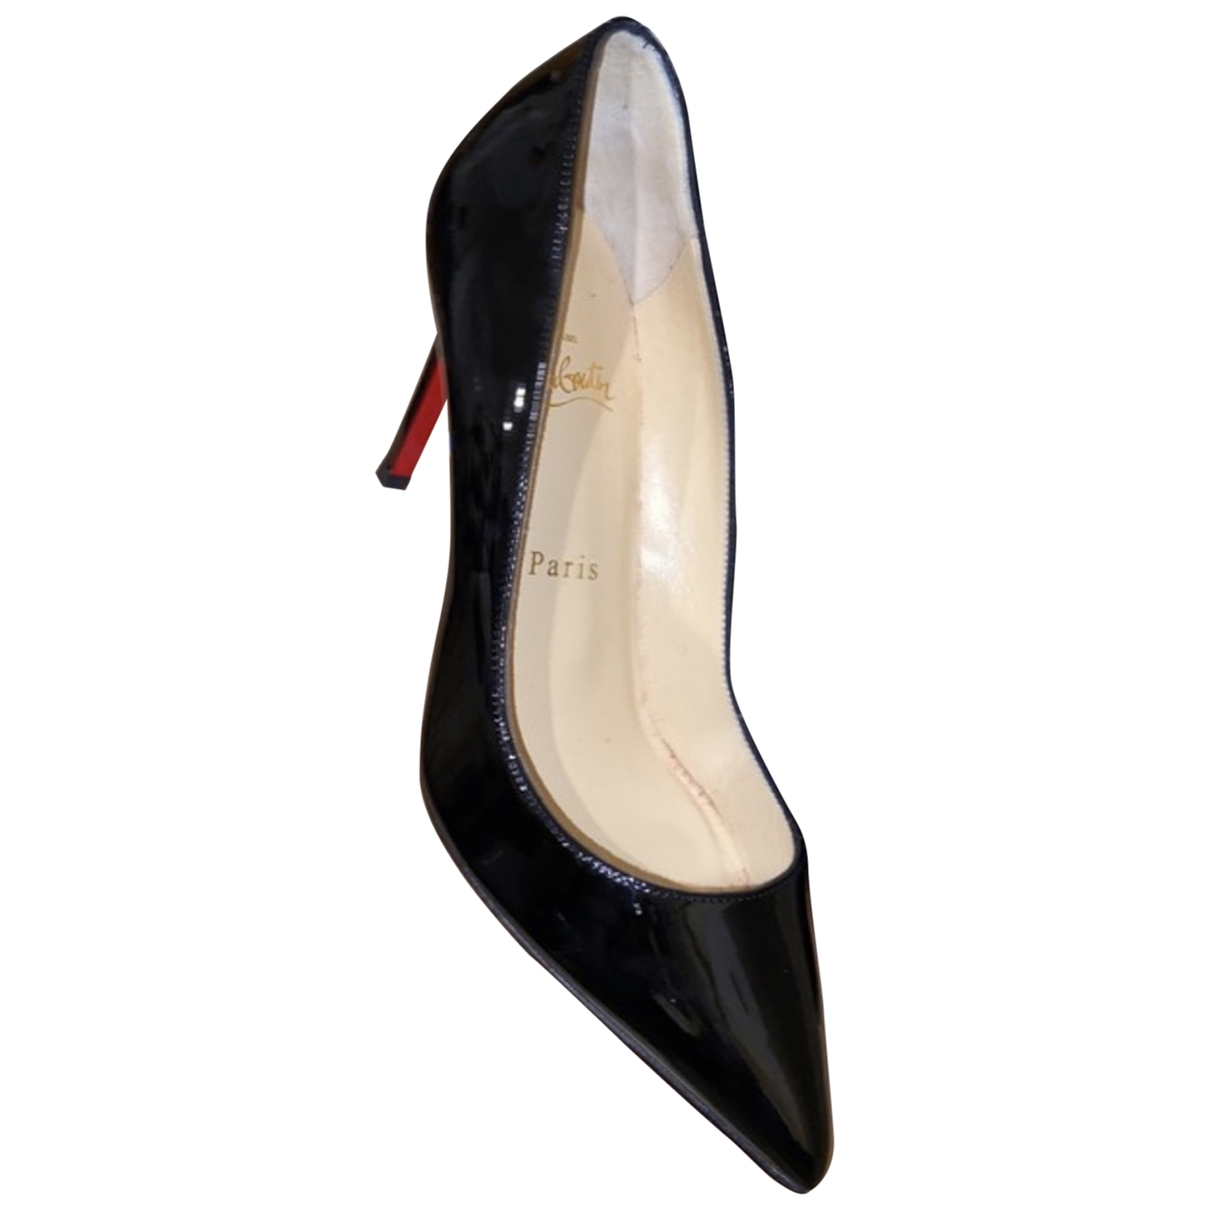 Christian Louboutin Pigalle Black Patent leather Heels for Women 37.5 EU